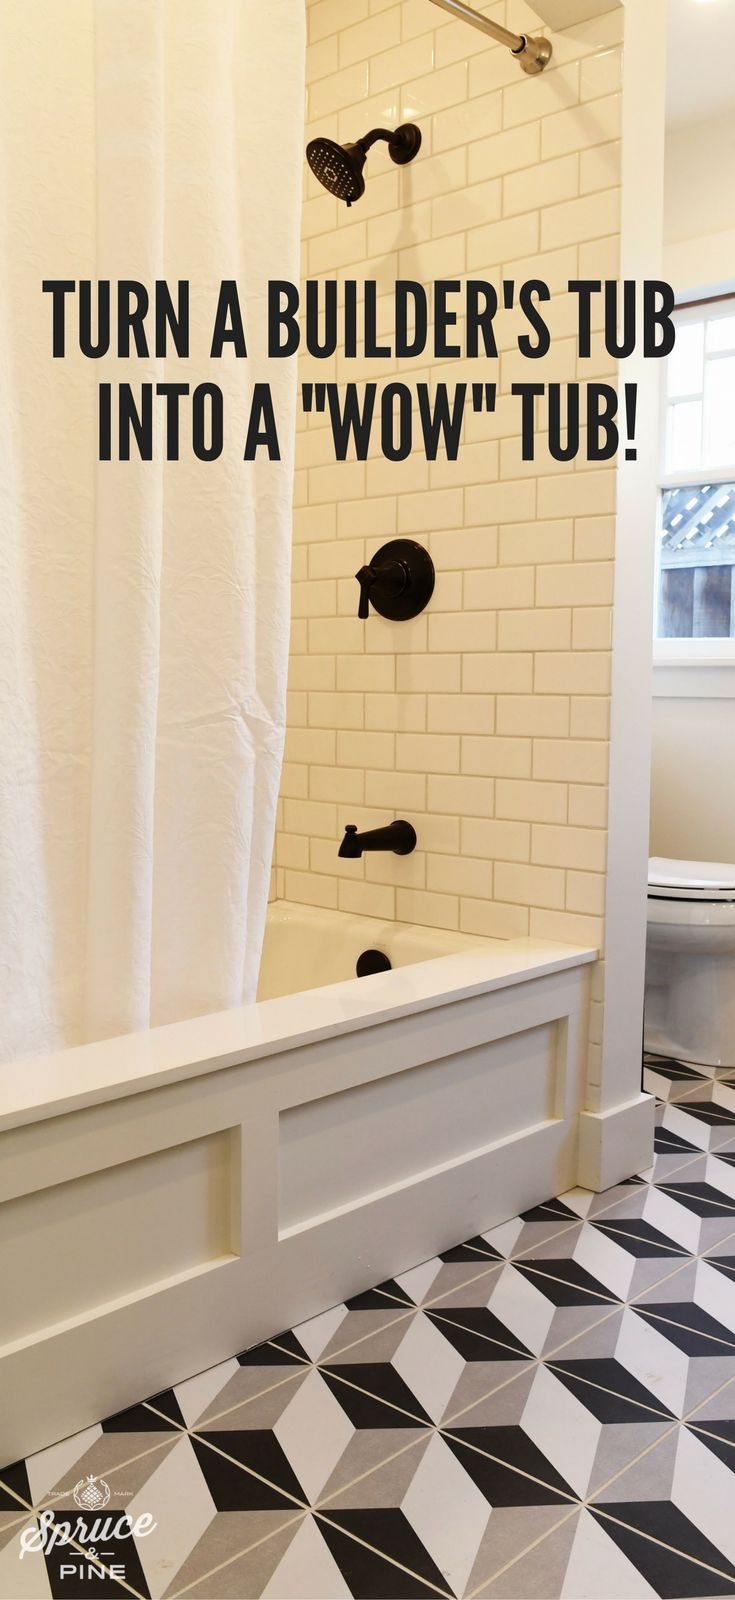 Even the most basic bath tub can be expensive. And when you are flipping homes, it's important to try to curb costs wherever possible while creating a superior product. My partner, Lance, came up with this tub trick and we've used it about 3 times now with extraordinary results. As much as I want to keep all our secrets to ourselves, this one is so good and so easy that we just had to share it. Remodeling your bathroom but don't want to spend a fortune?